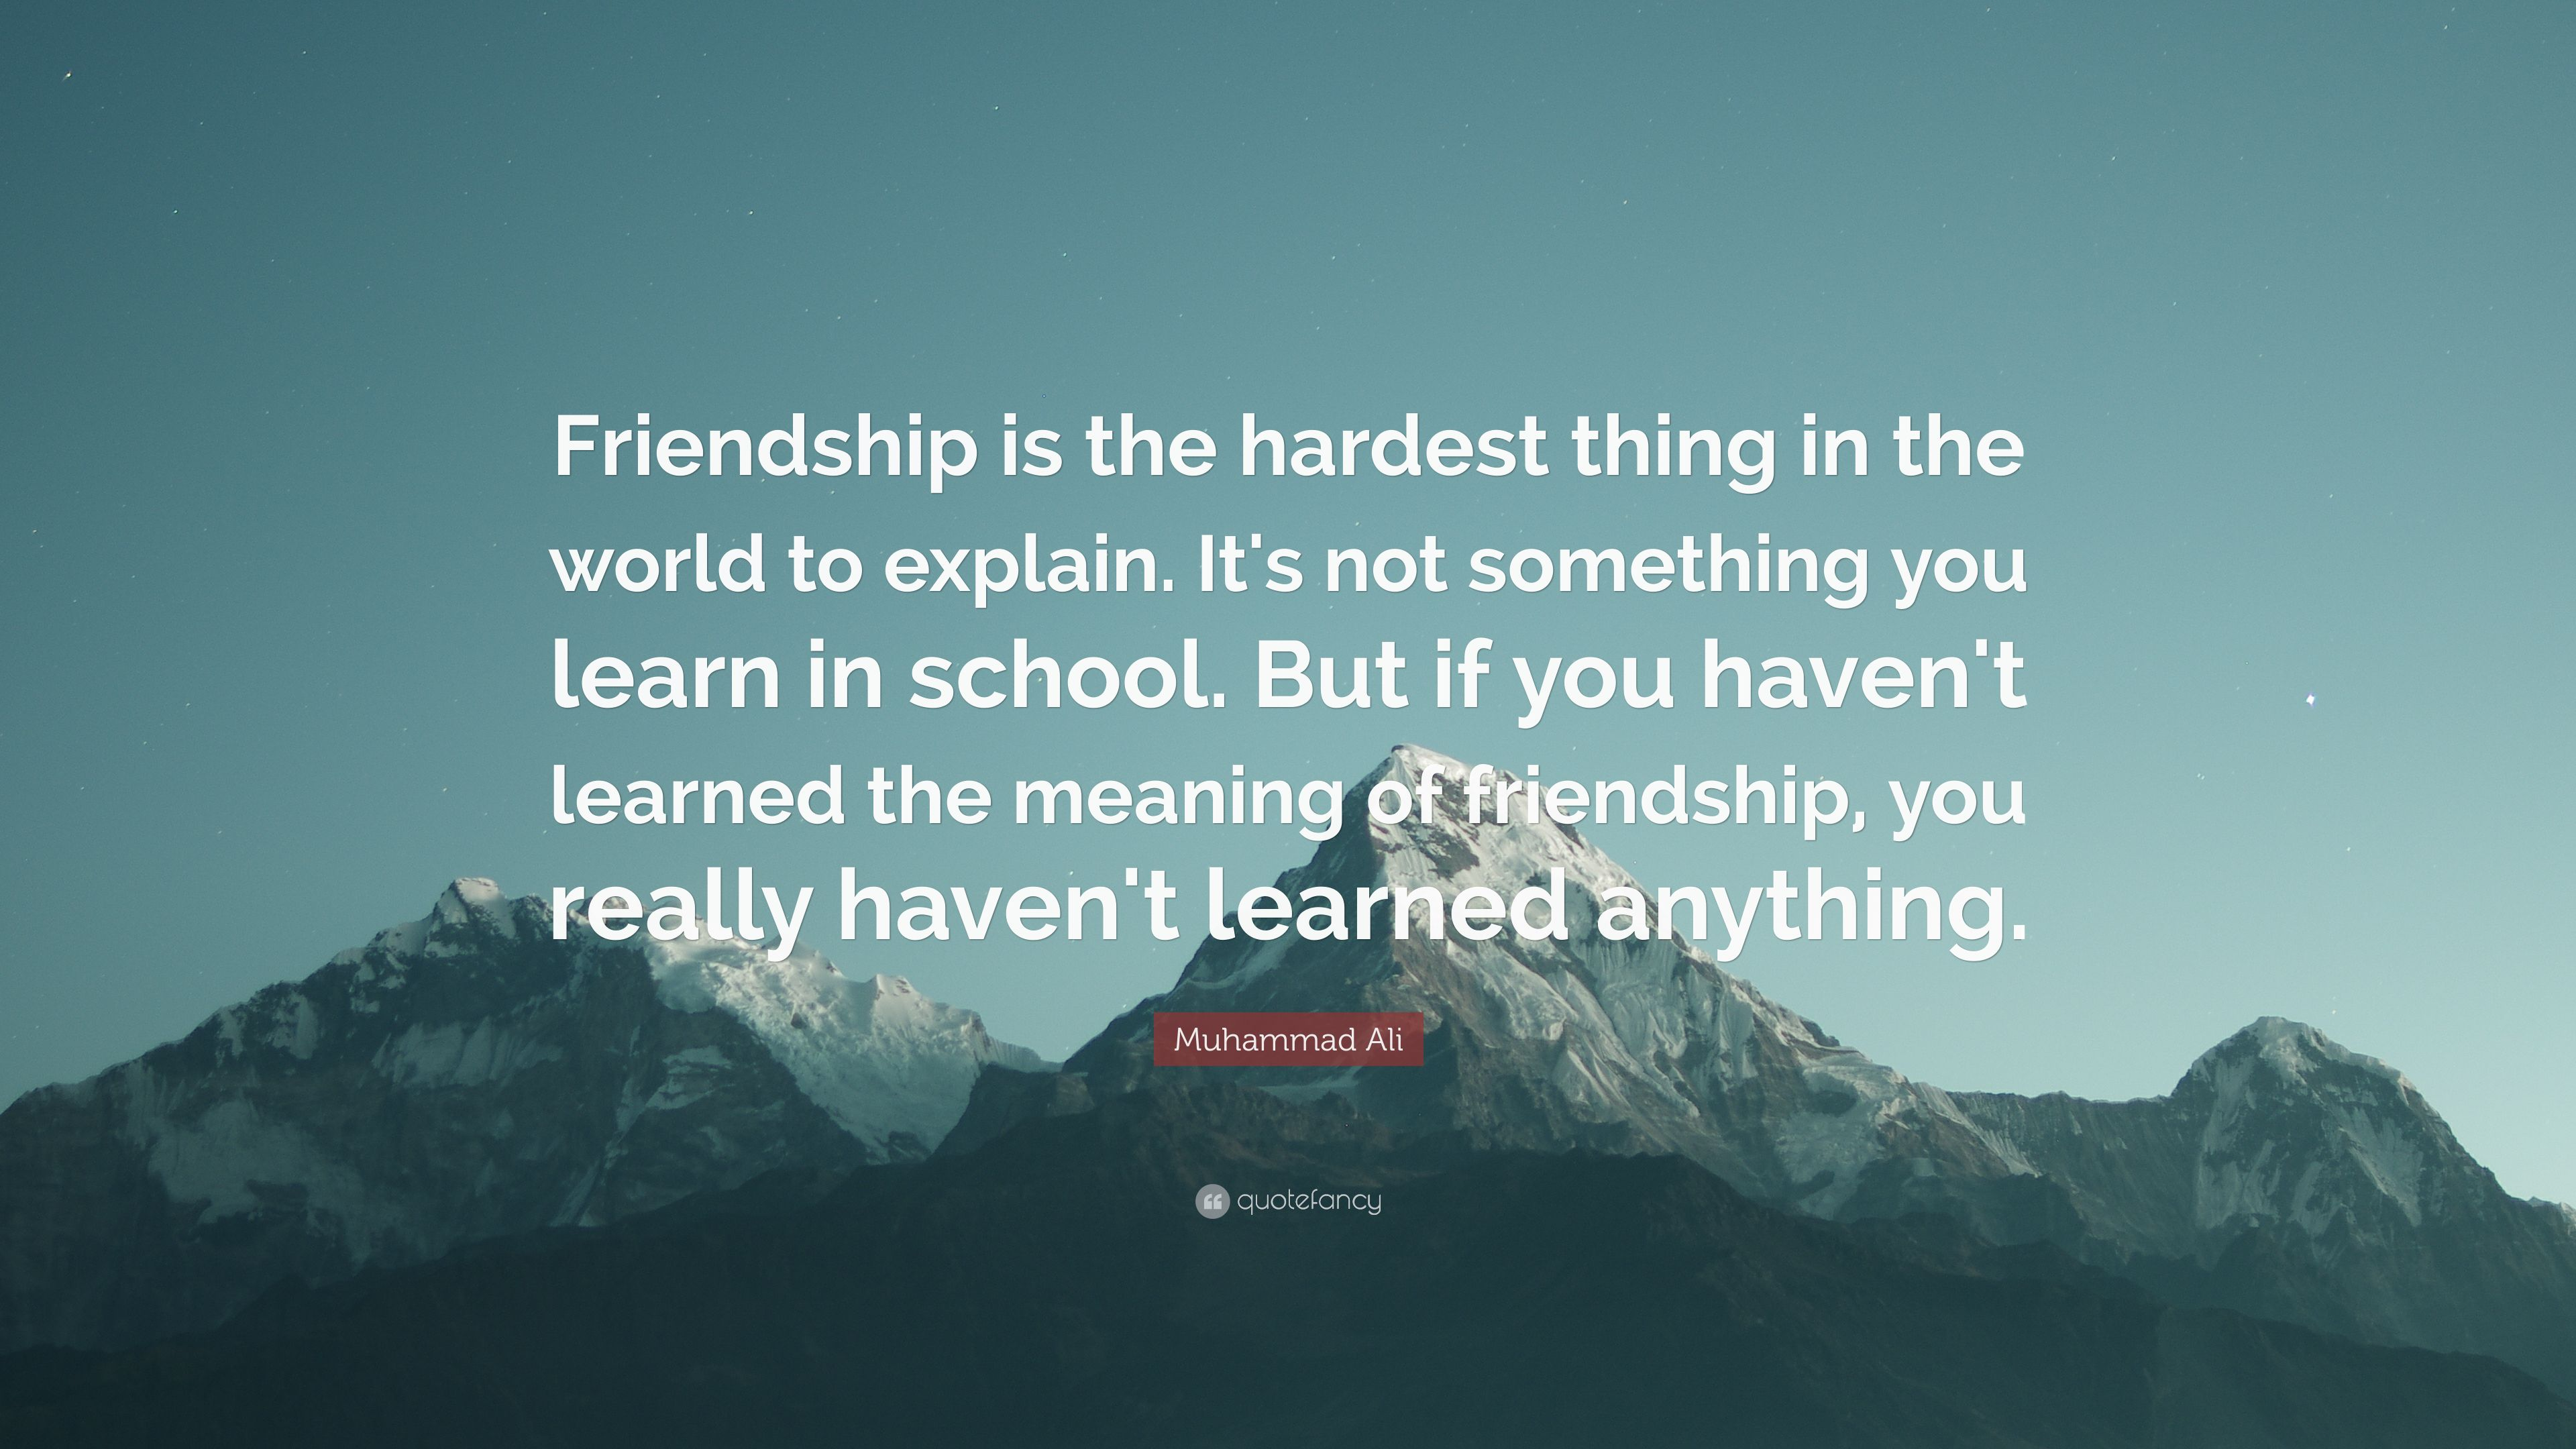 """ Friendship is the hardest thing in the world to explain. It's not something you learn in school. But if you haven't learned the meaning of friendship, you really haven't learned anything."" ― Muhammad Ali [ 3840 × 2160 ]"